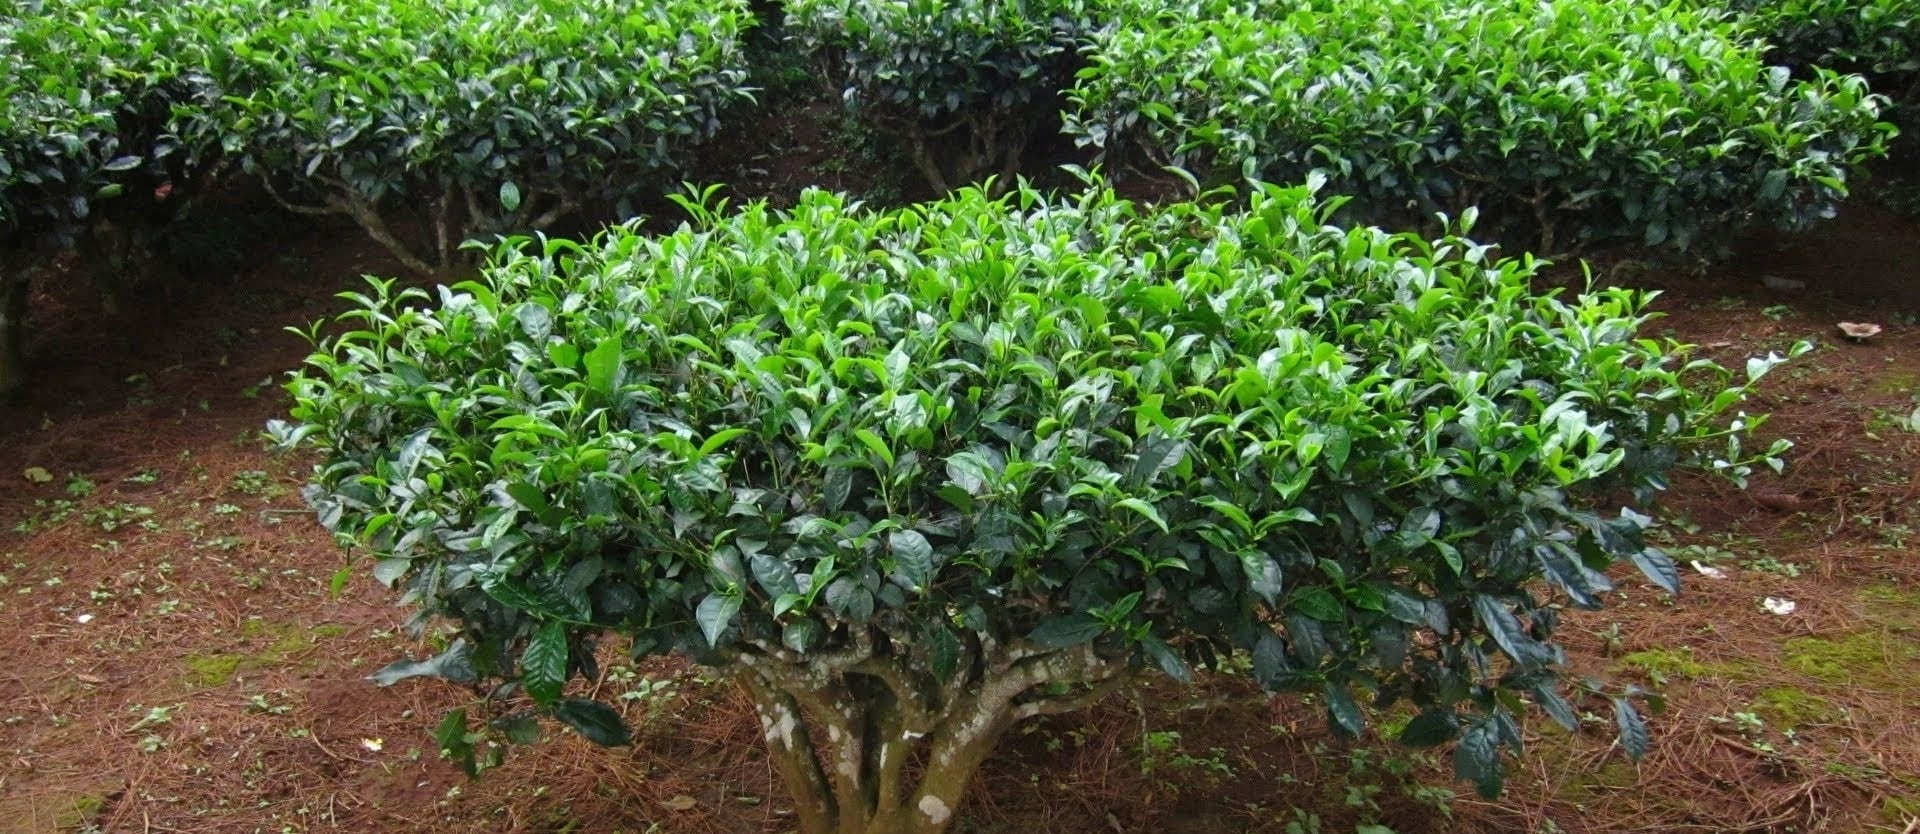 Antimutagenic Activity of Green Versus White Tea